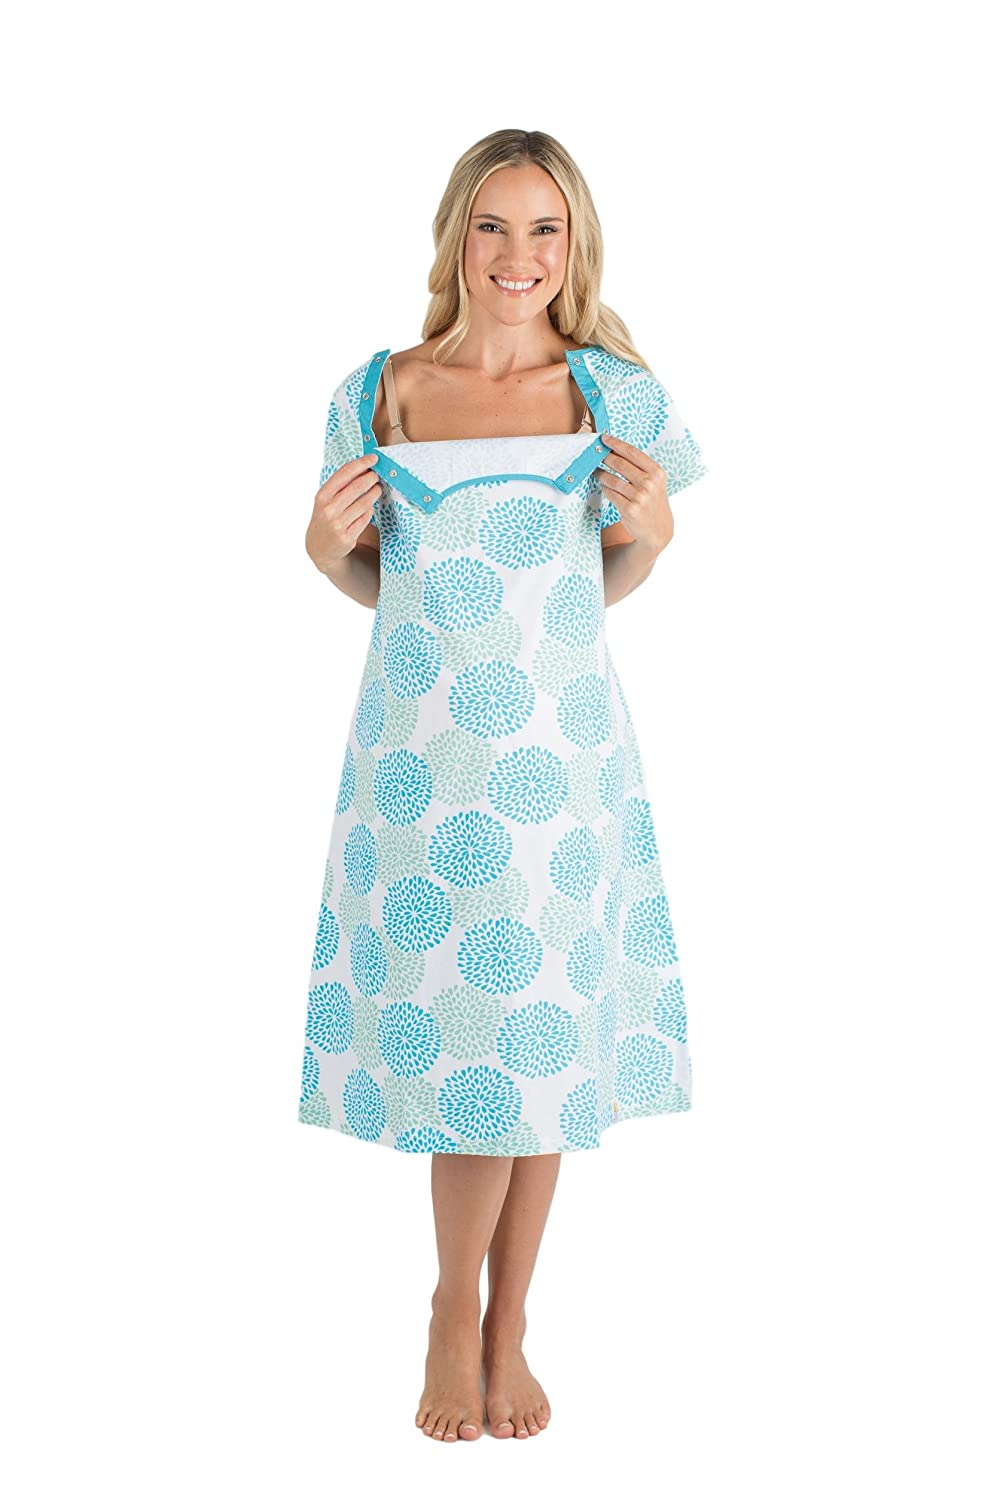 94f0a57e864e2 Baby Be Mine Gownies - Delivery Maternity Hospital Gown Labor Kit:  Amazon.ca: Clothing & Accessories